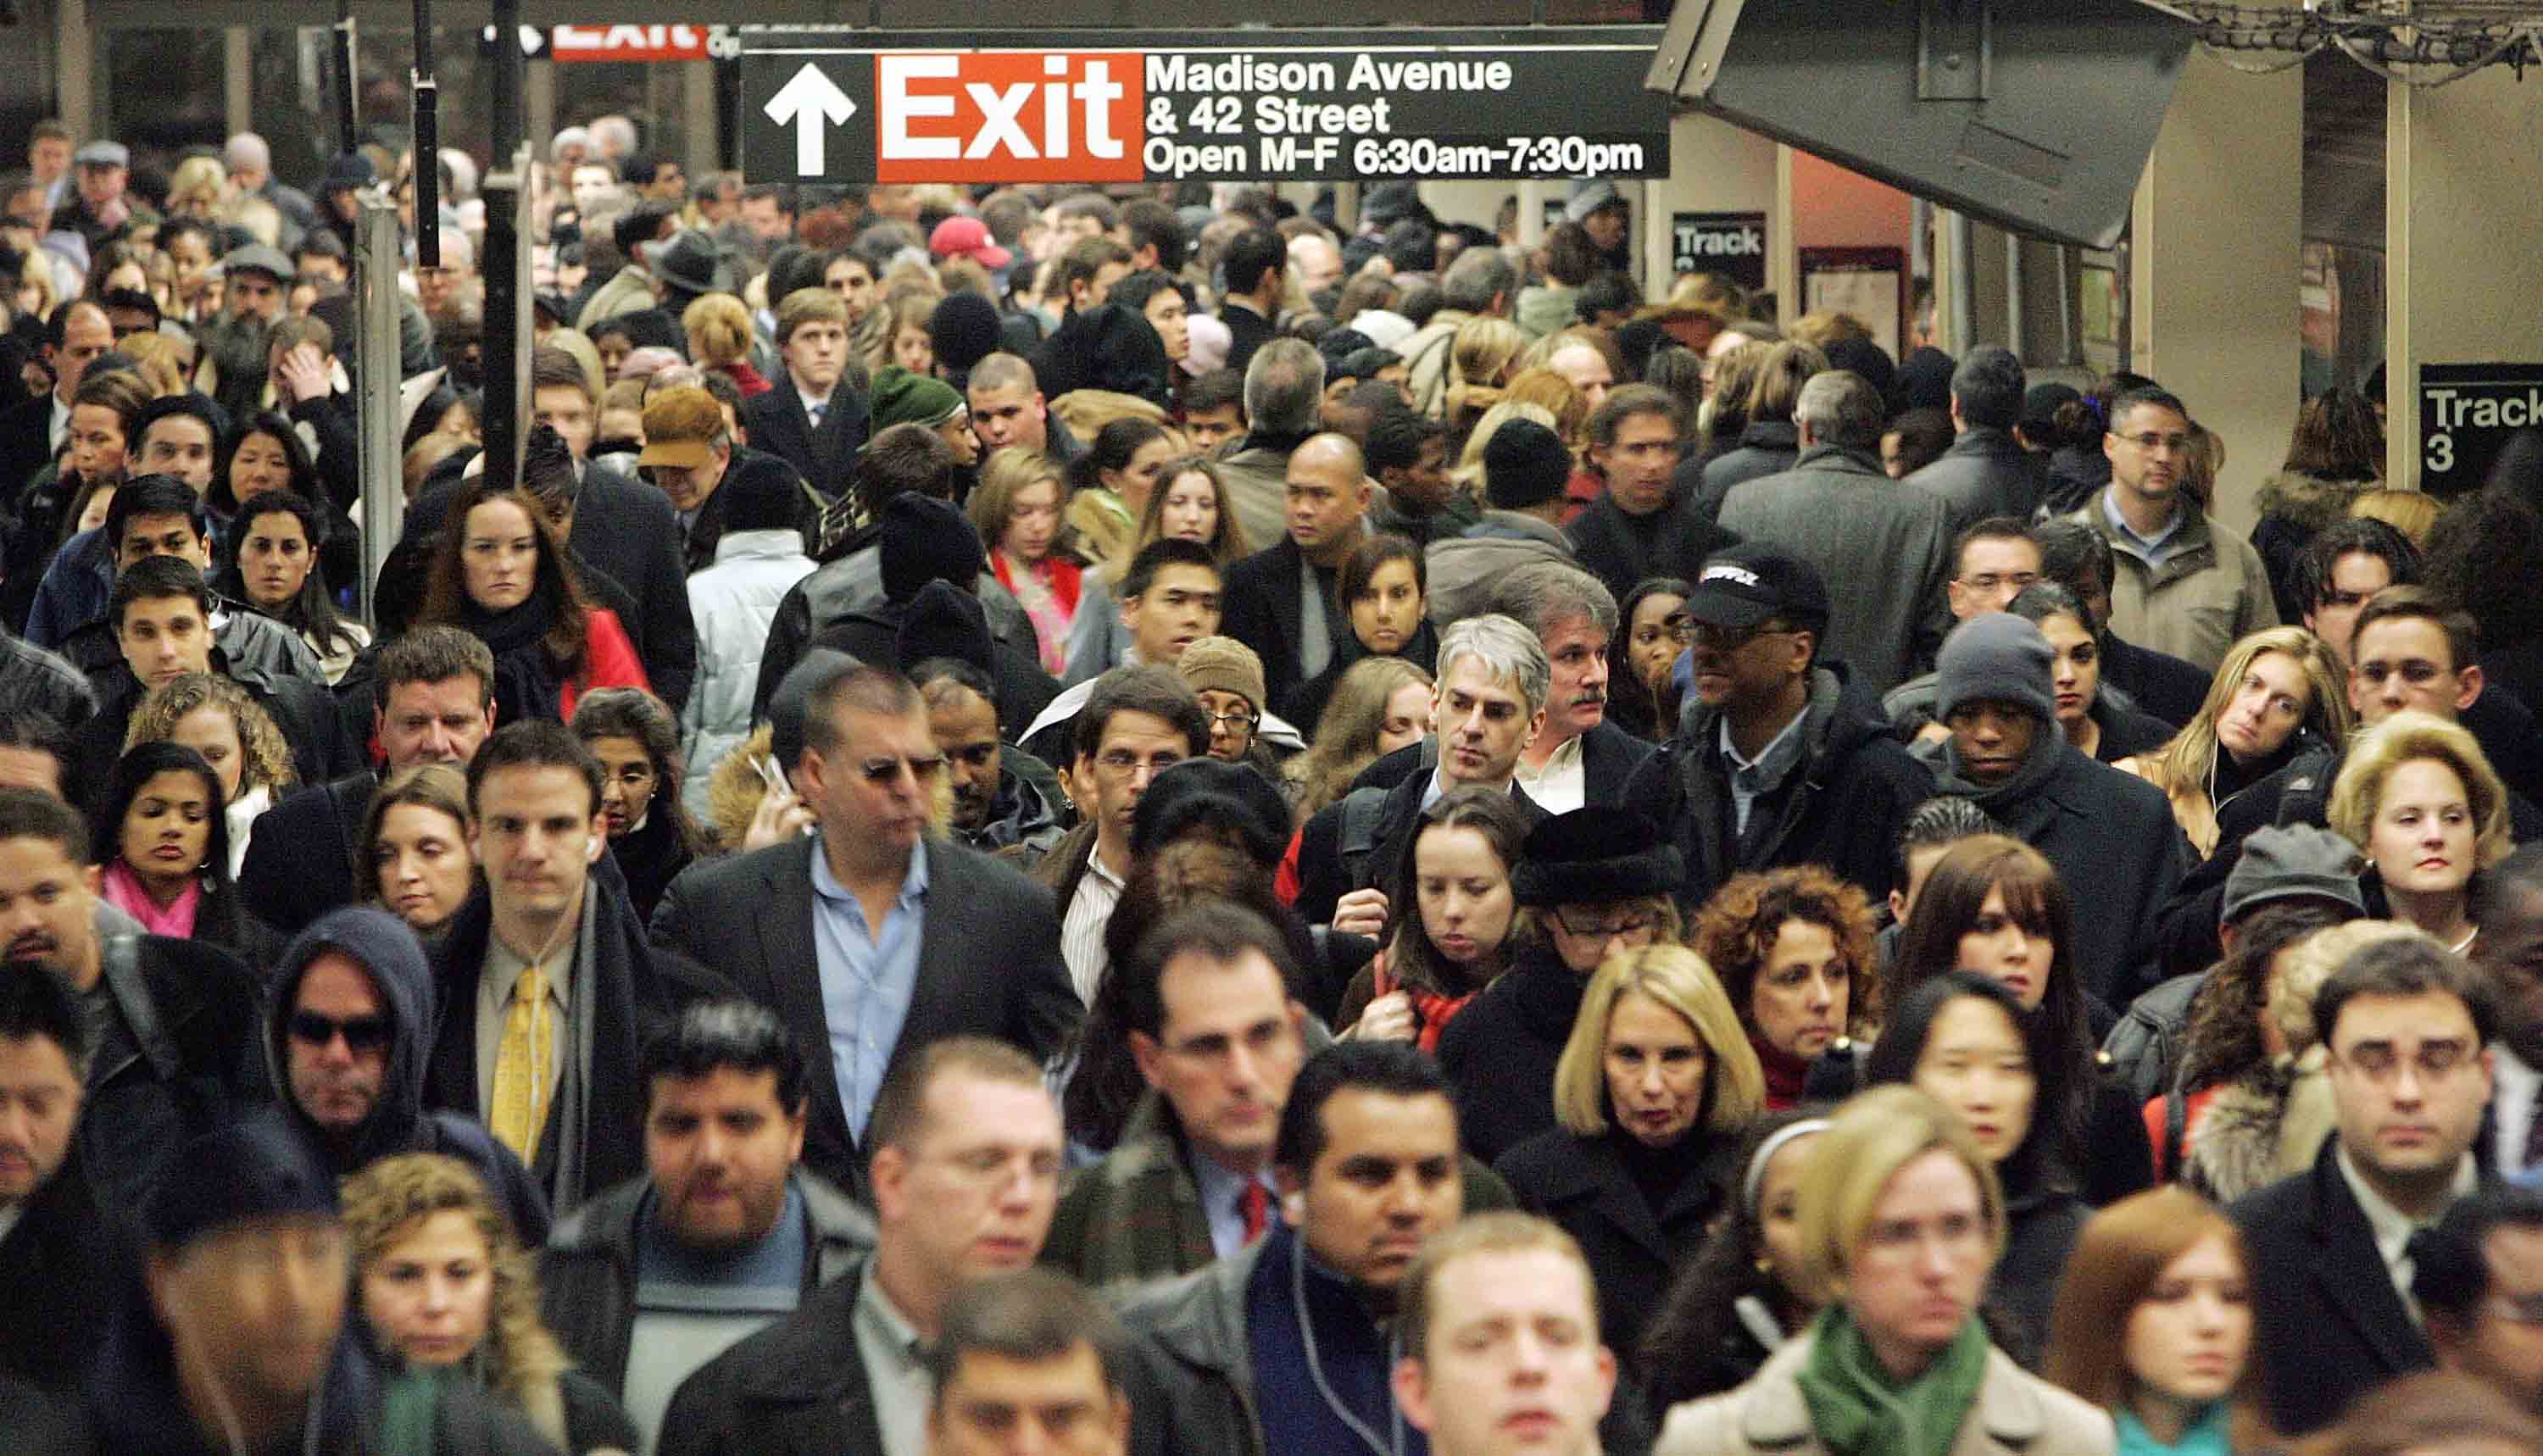 Crowded subway station in New York City.